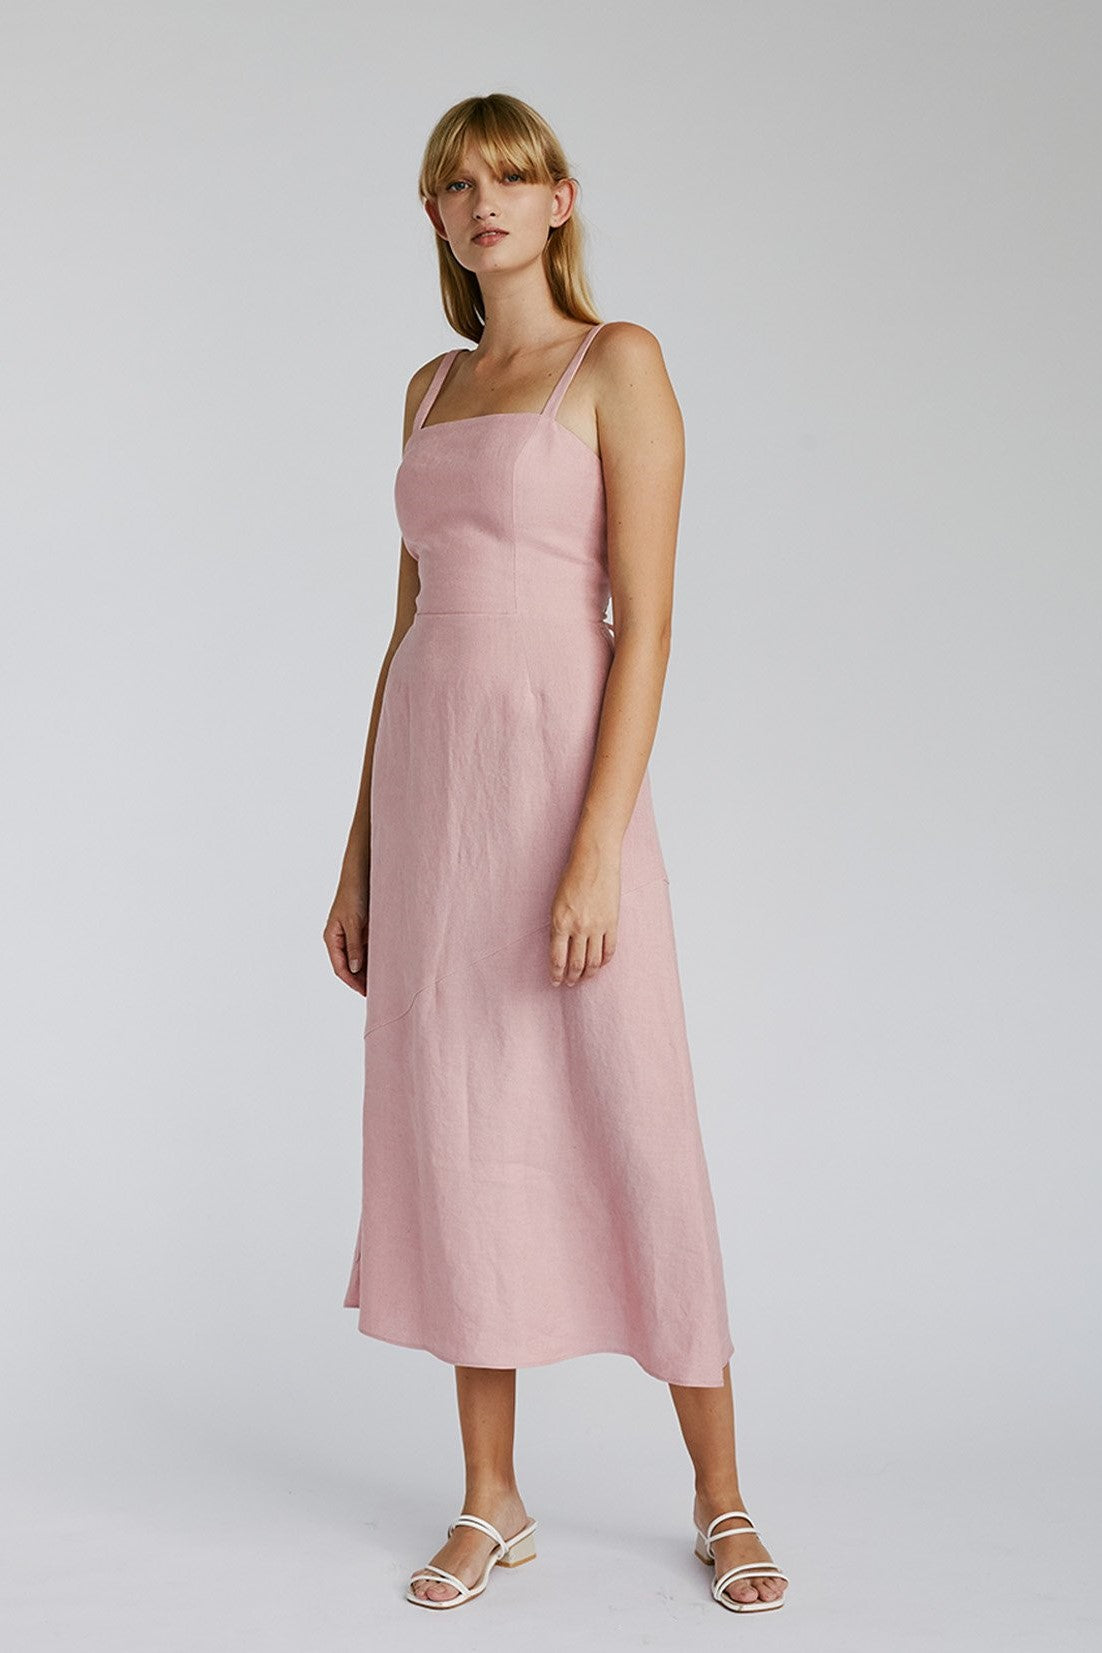 Jillian Boustred Cecilia Dress // Pink